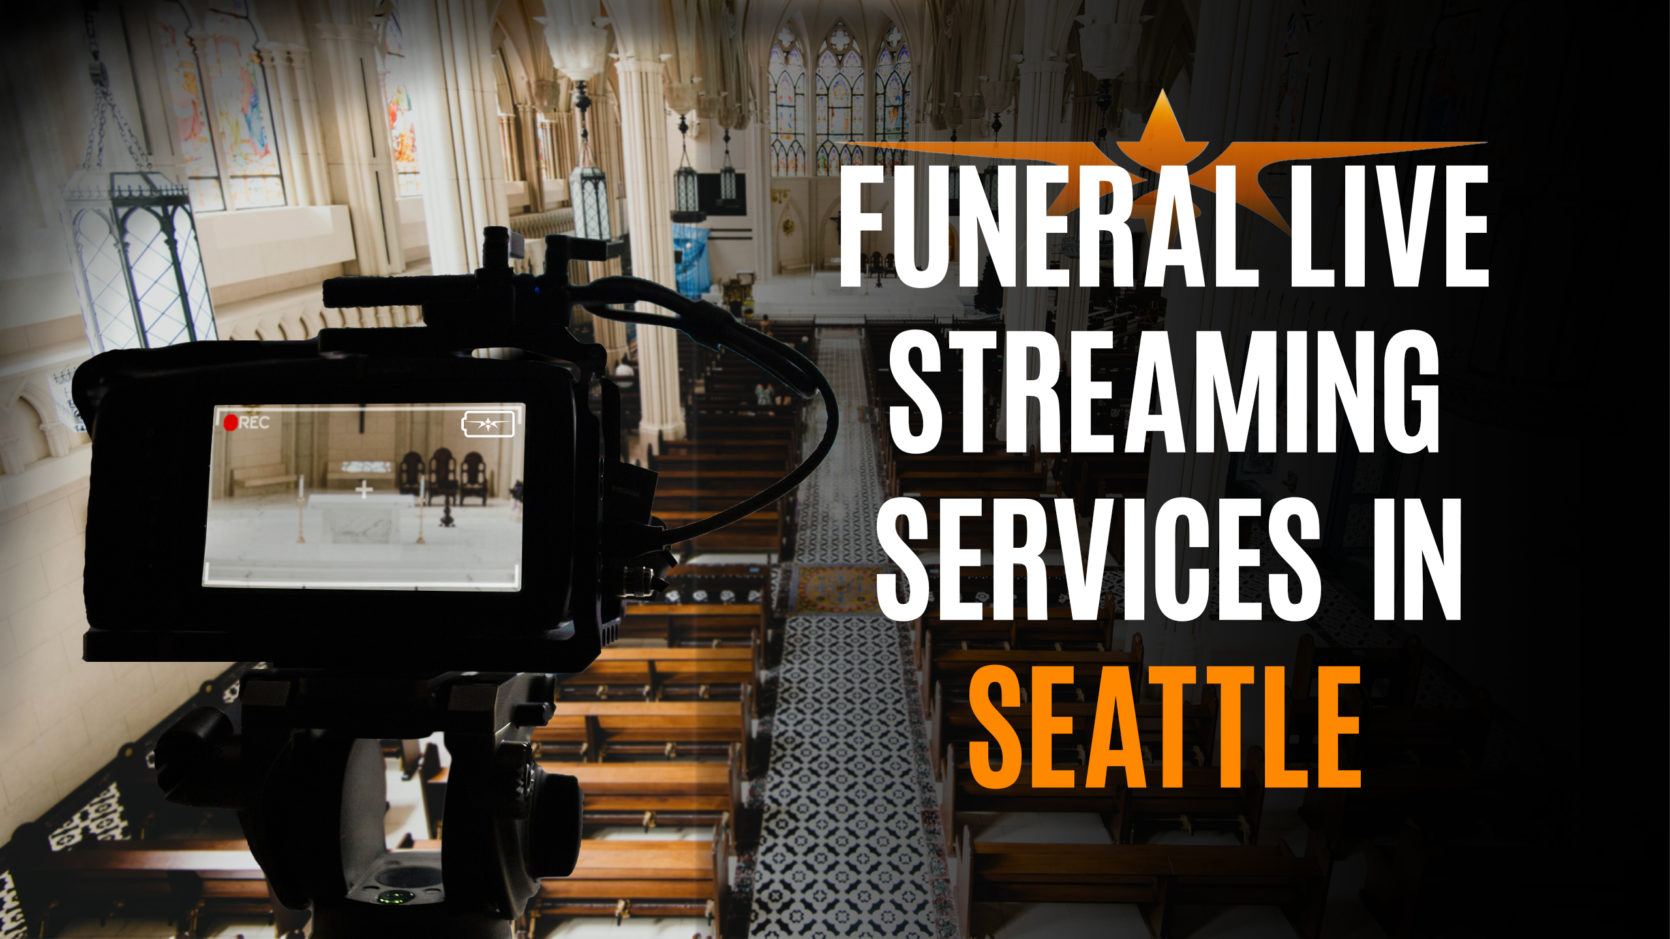 Funeral Live Streaming Services in Seattle